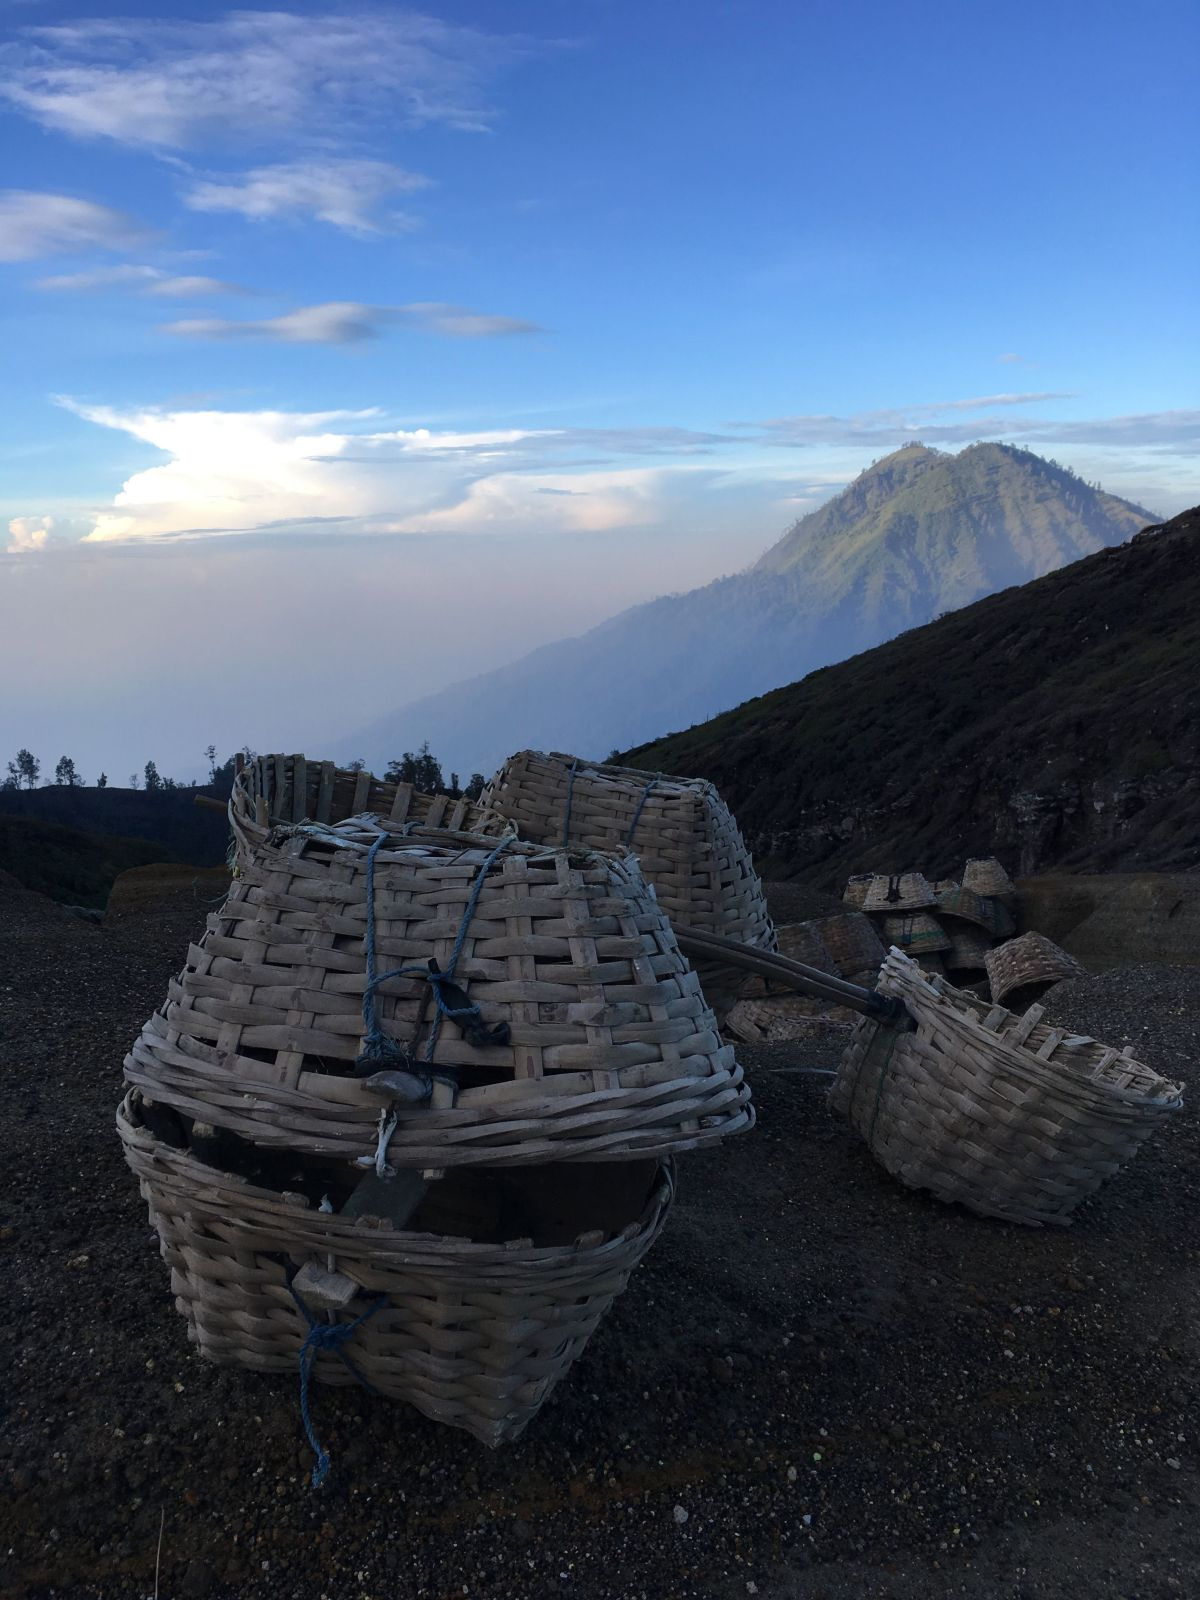 <p>The baskets used by miners to carry sulpher from the Ijen Crater to base camp.</p>